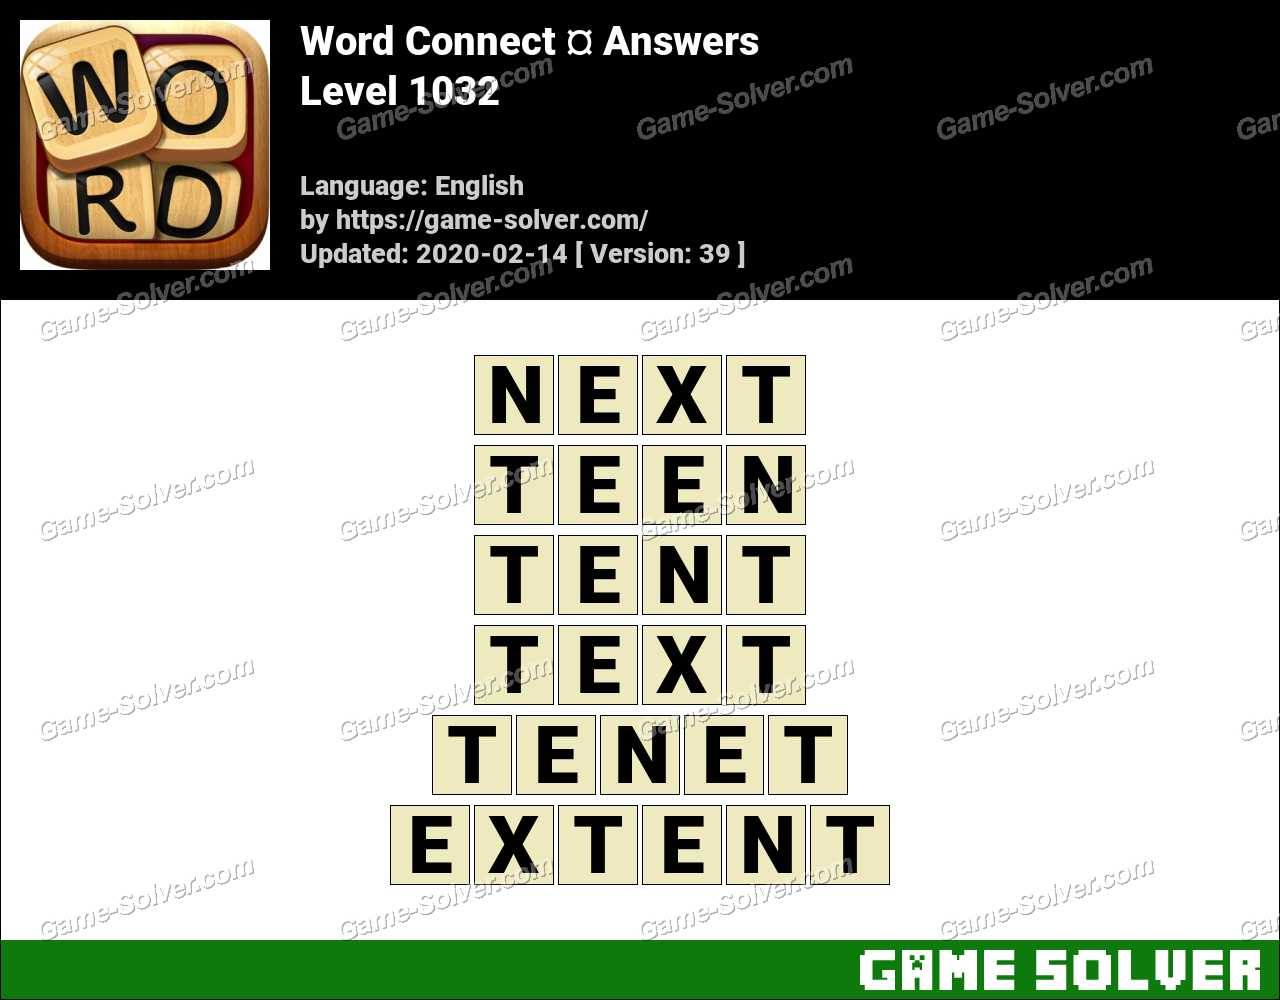 Word Connect Level 1032 Answers